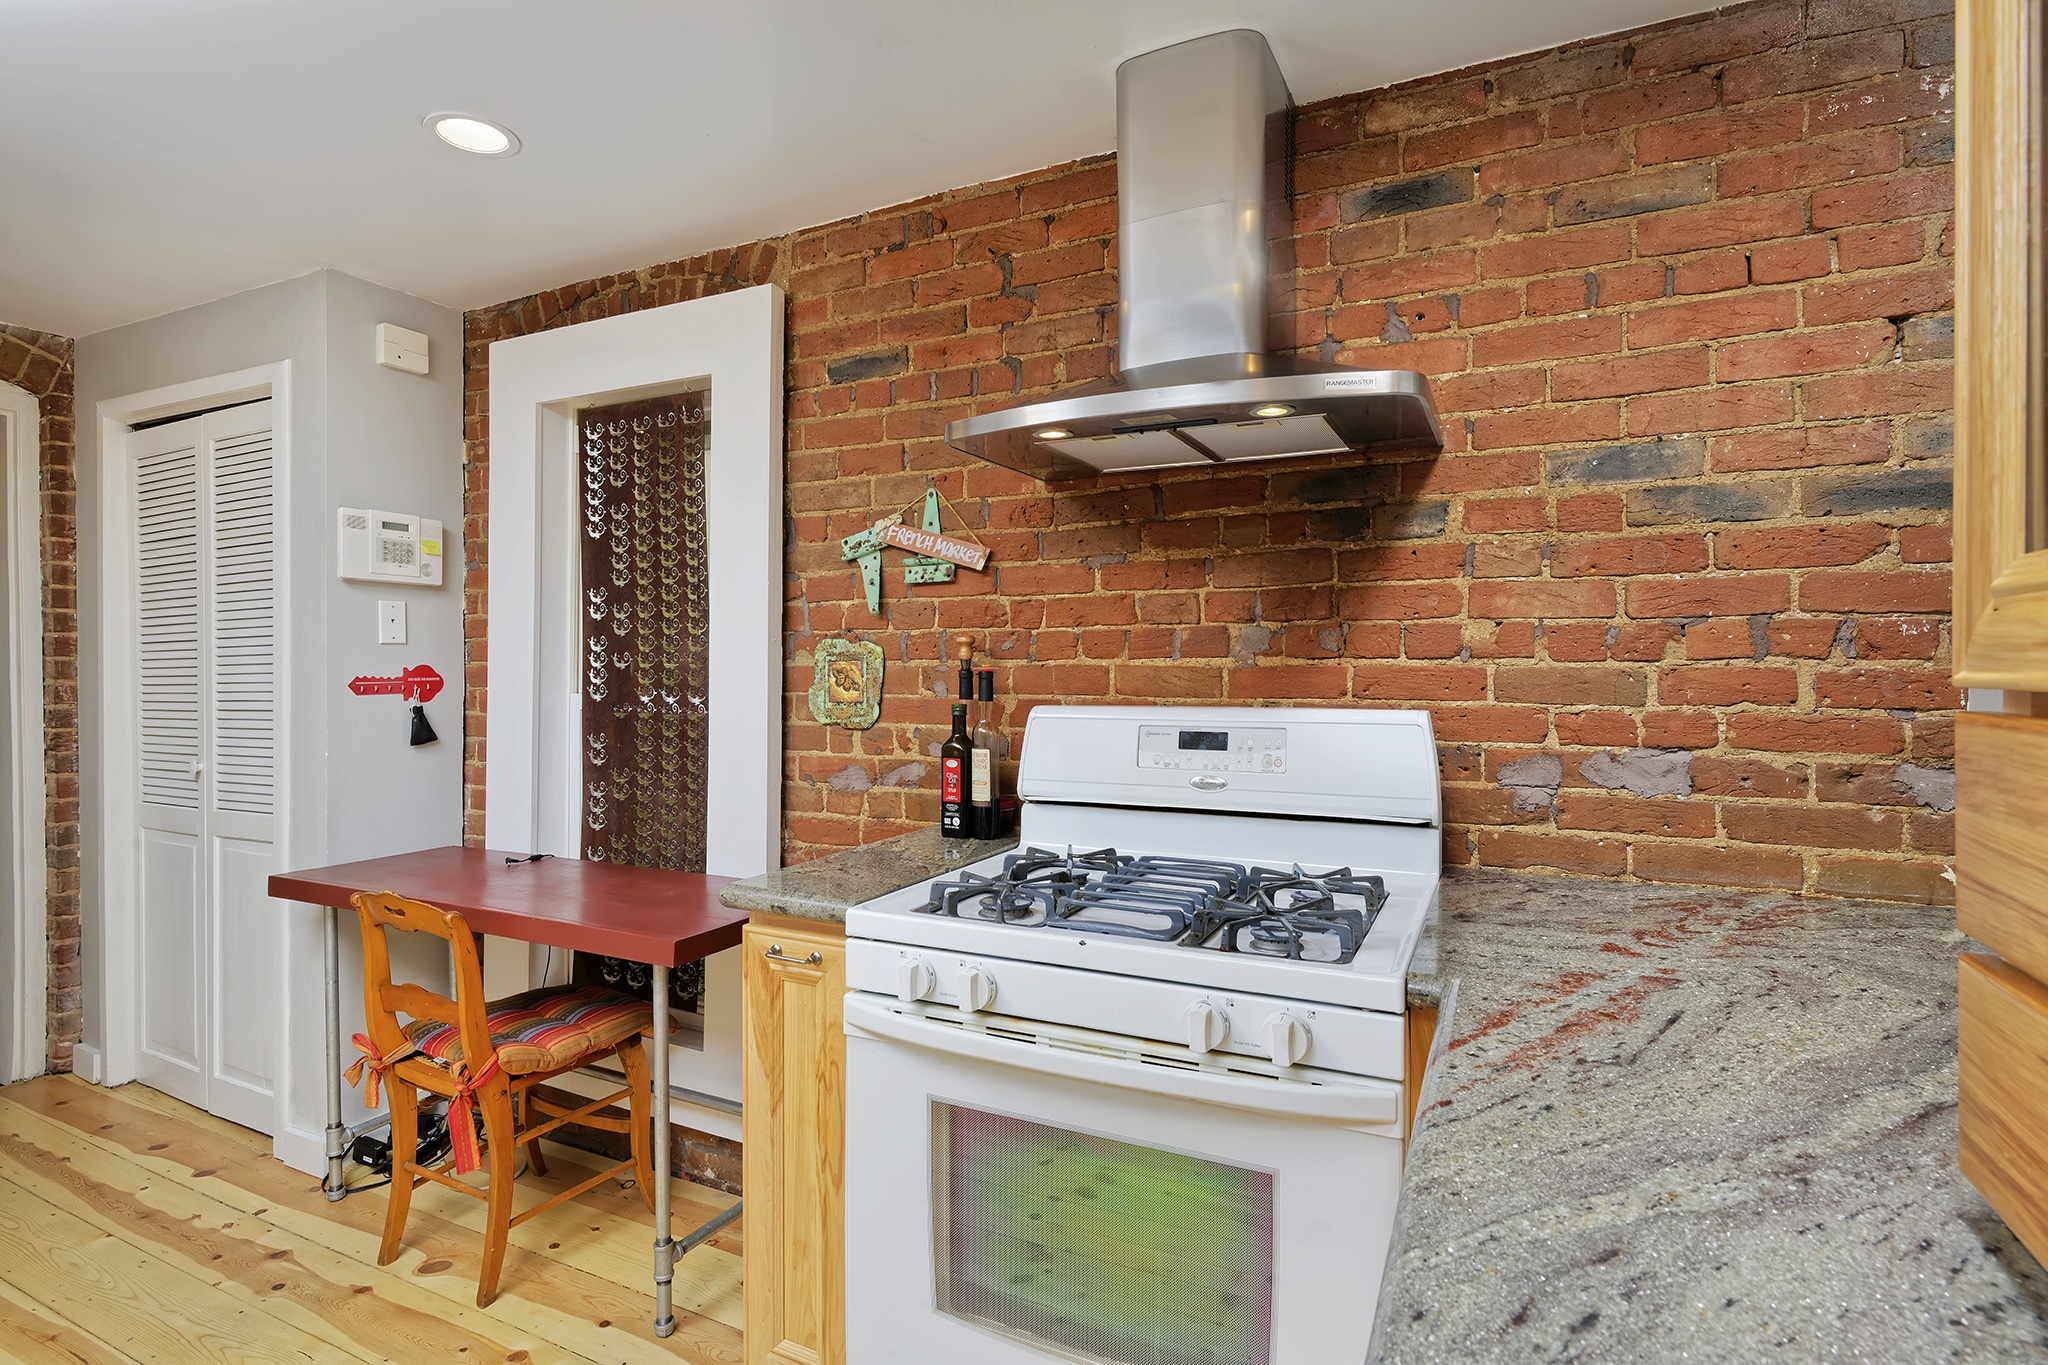 Washington Park Kitchen With Exposed Red Brick, Stainless Vent Hood